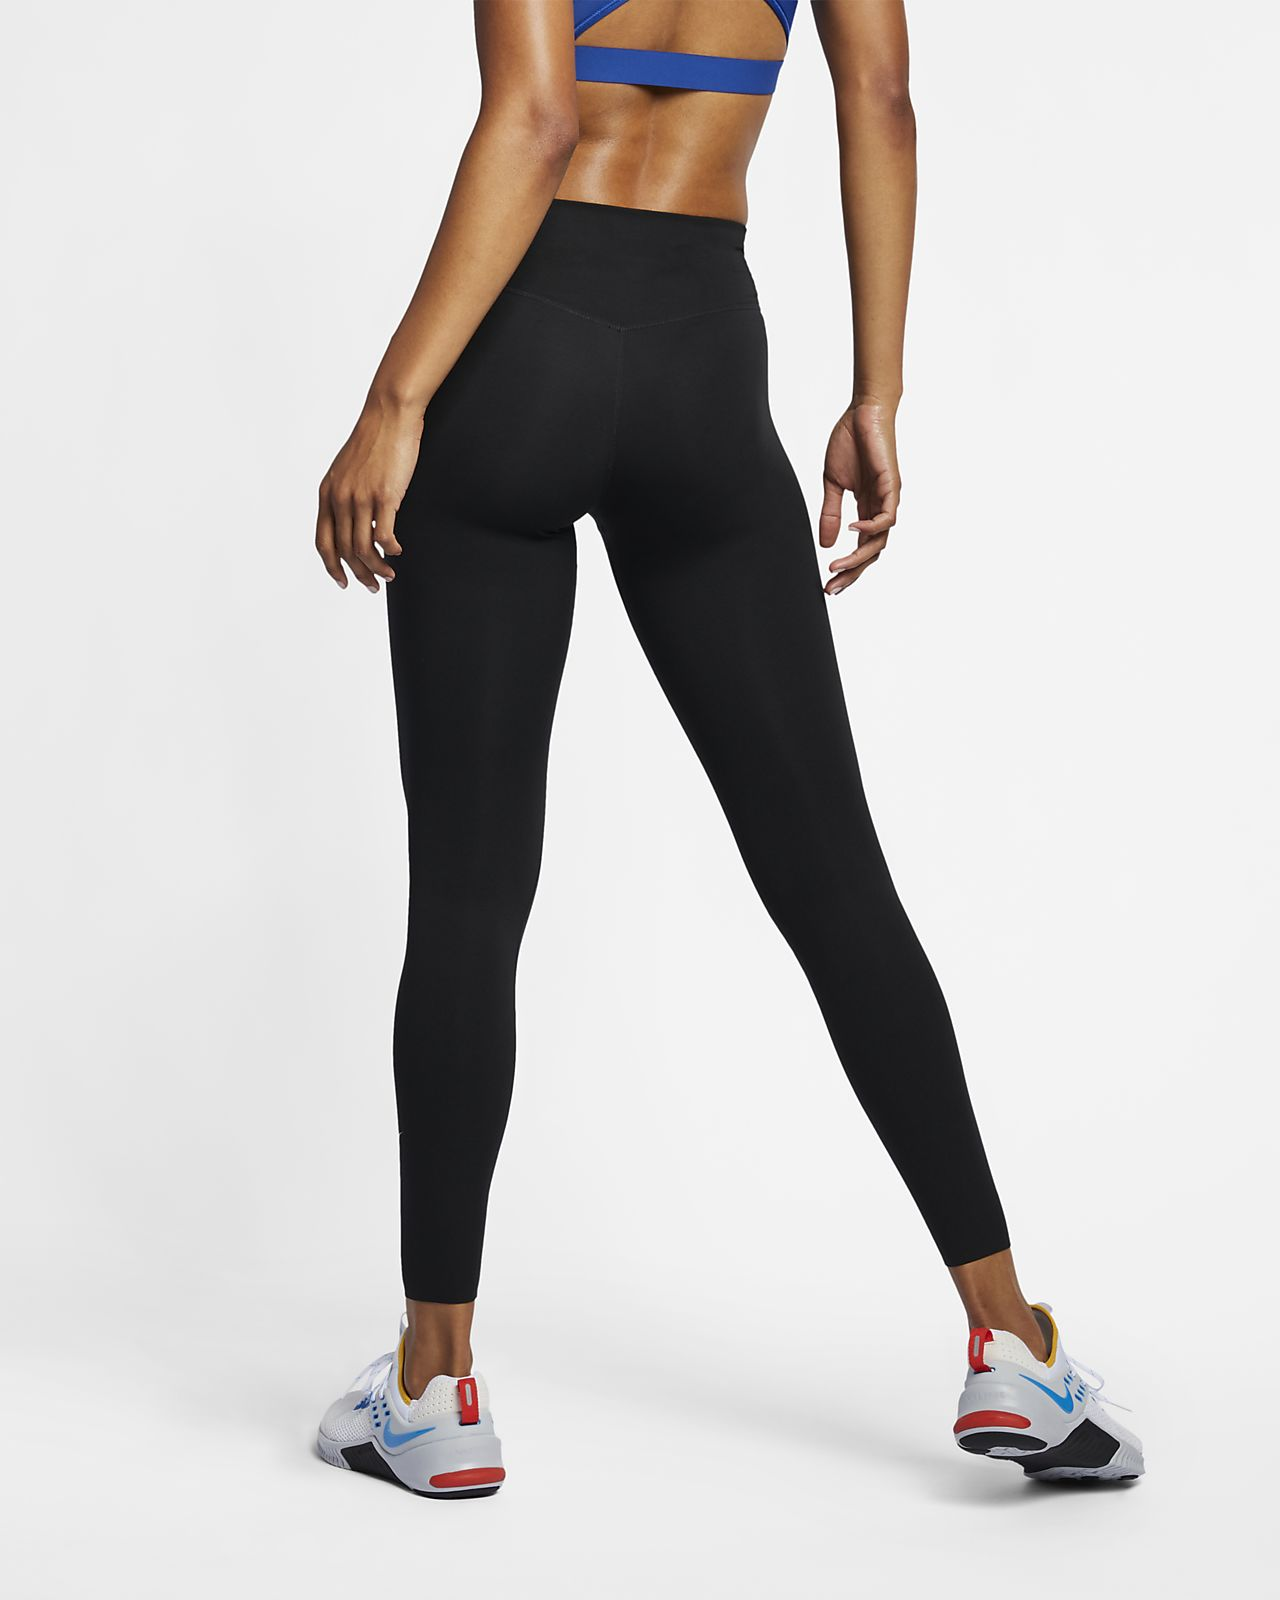 outlet for sale wide range new list Nike One Luxe Women's Leggings